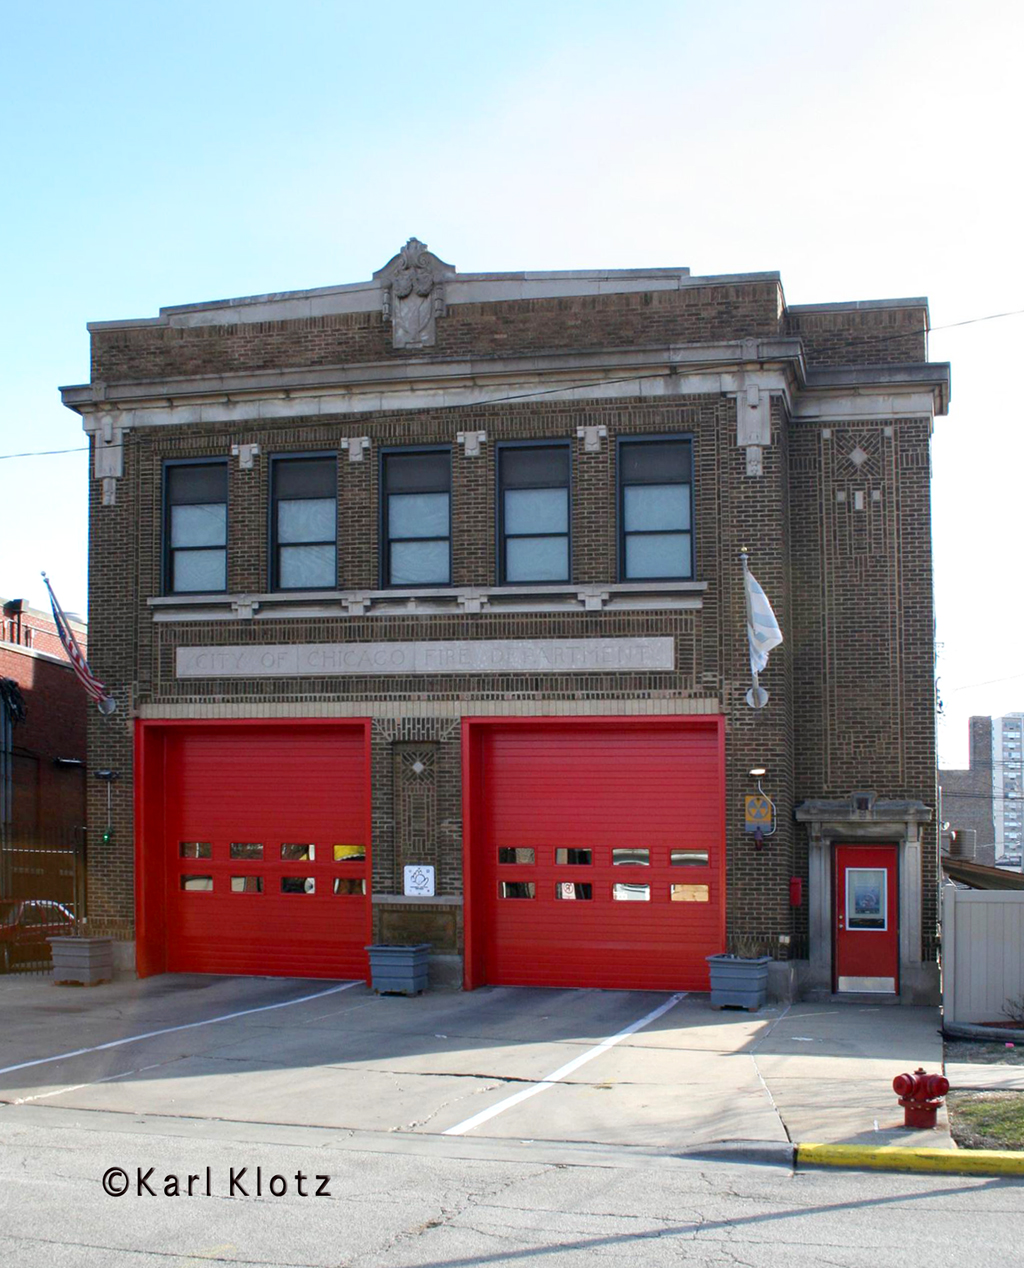 Chicago Fire Department Engine 126's house